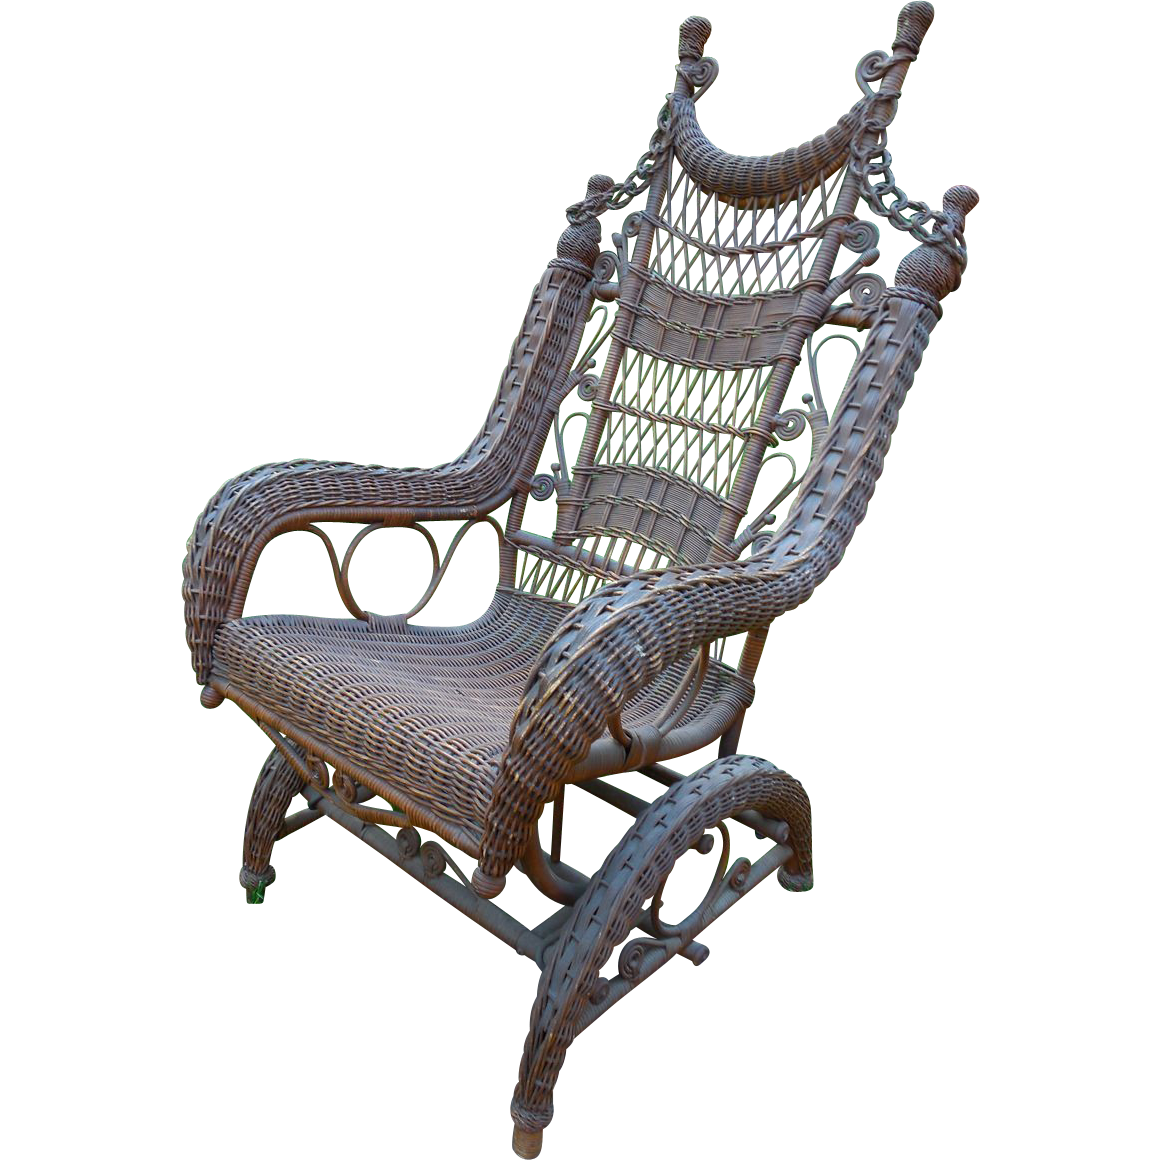 Fine Antique Natural Wicker Chairs Bedroom And Living Room Ncnpc Chair Design For Home Ncnpcorg